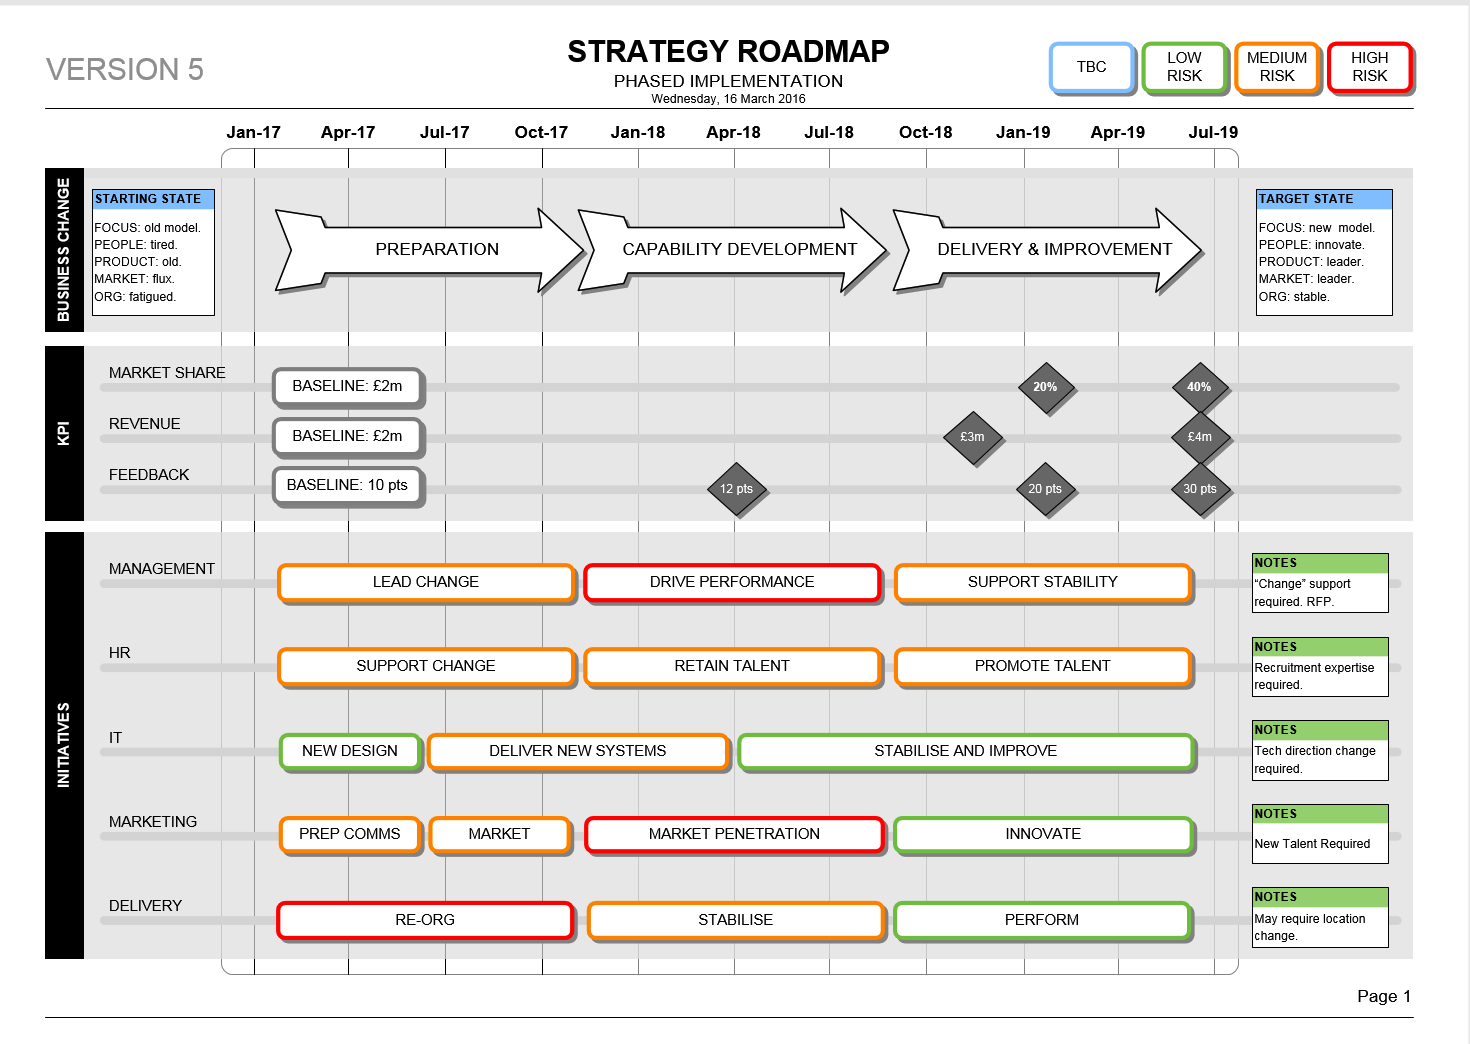 Strategy Roadmap Template (Visio) | Work | Pinterest | Gestión de ...